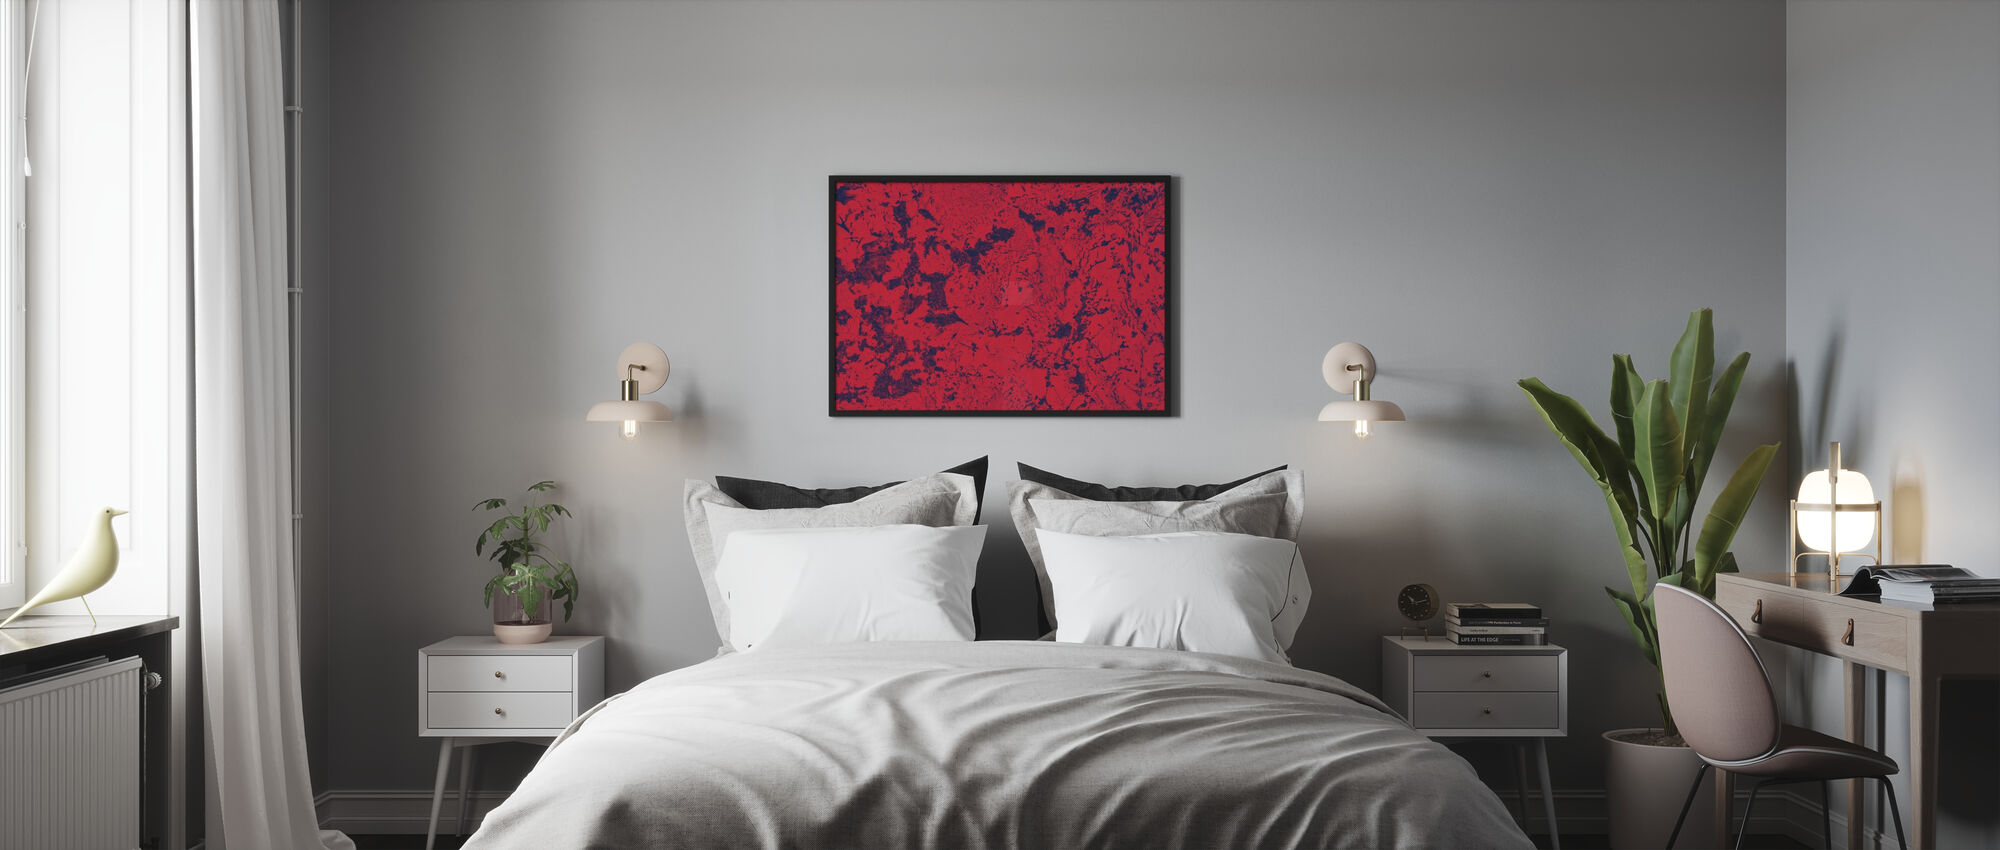 Red Rug Texture - Poster - Bedroom